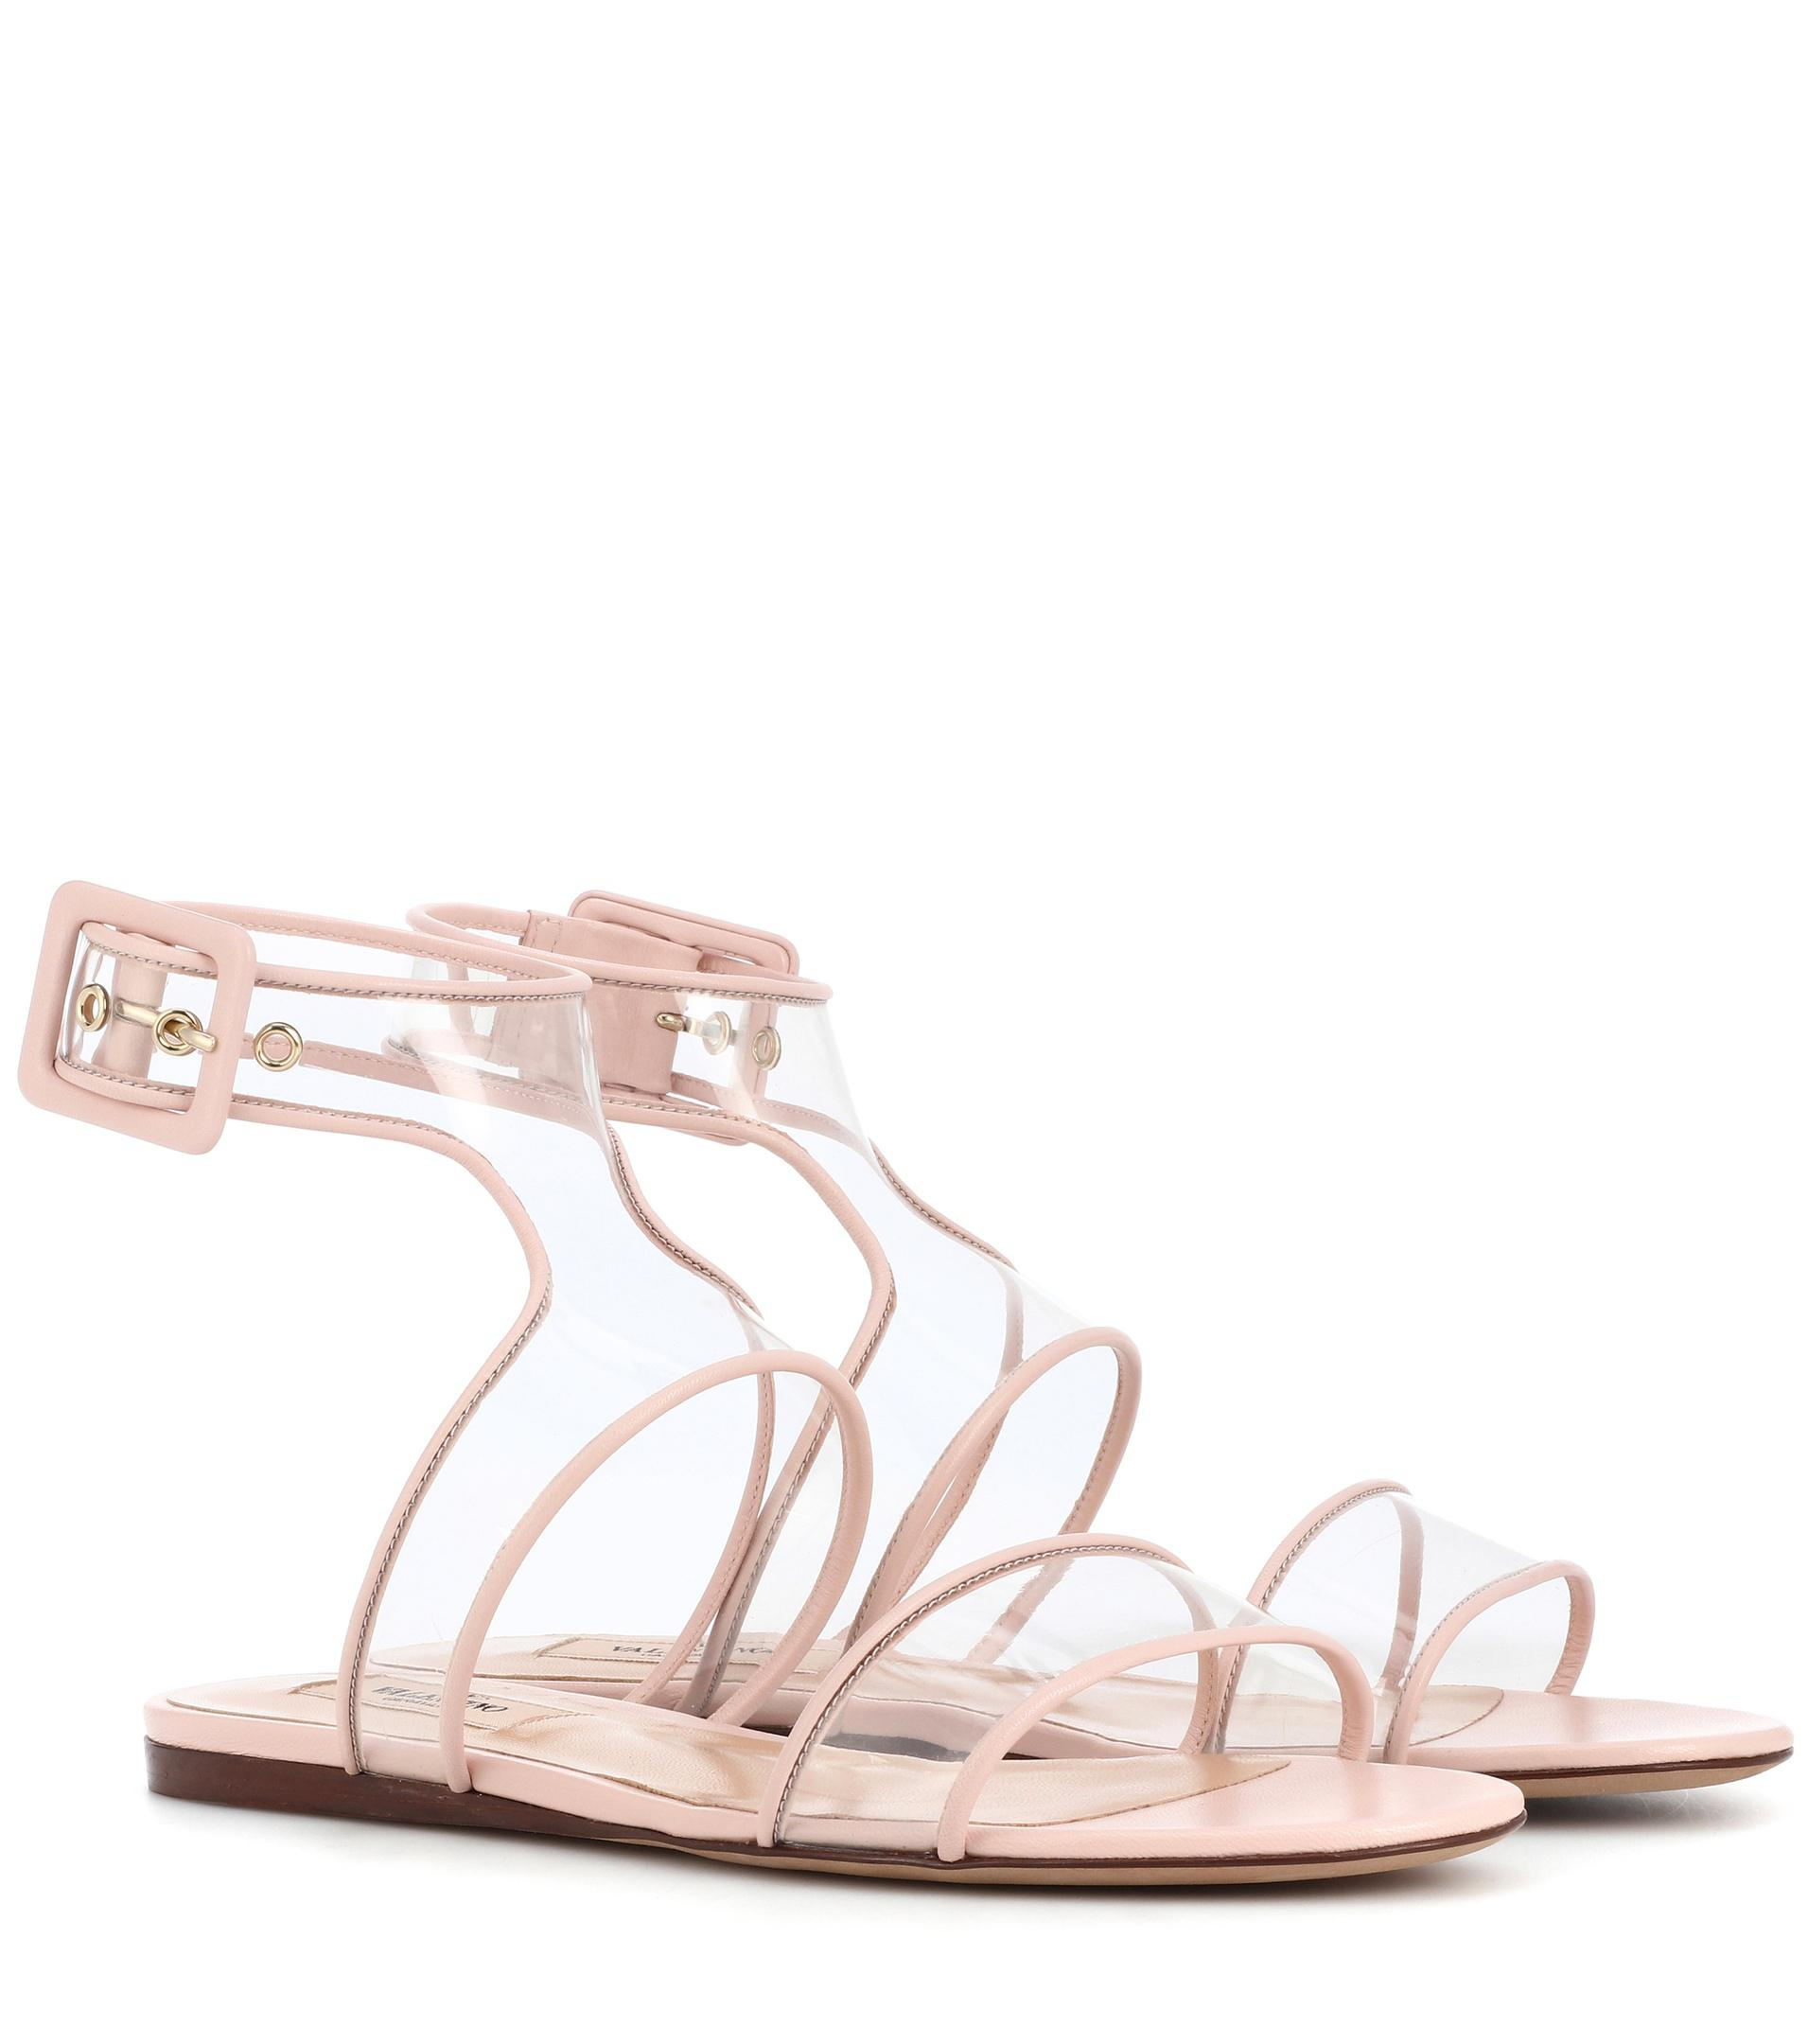 Valentino Dollybow bow-embellished leather sandals Free Shipping Fast Delivery Outlet Store Excellent Cheap Online 7YLaQDDIy